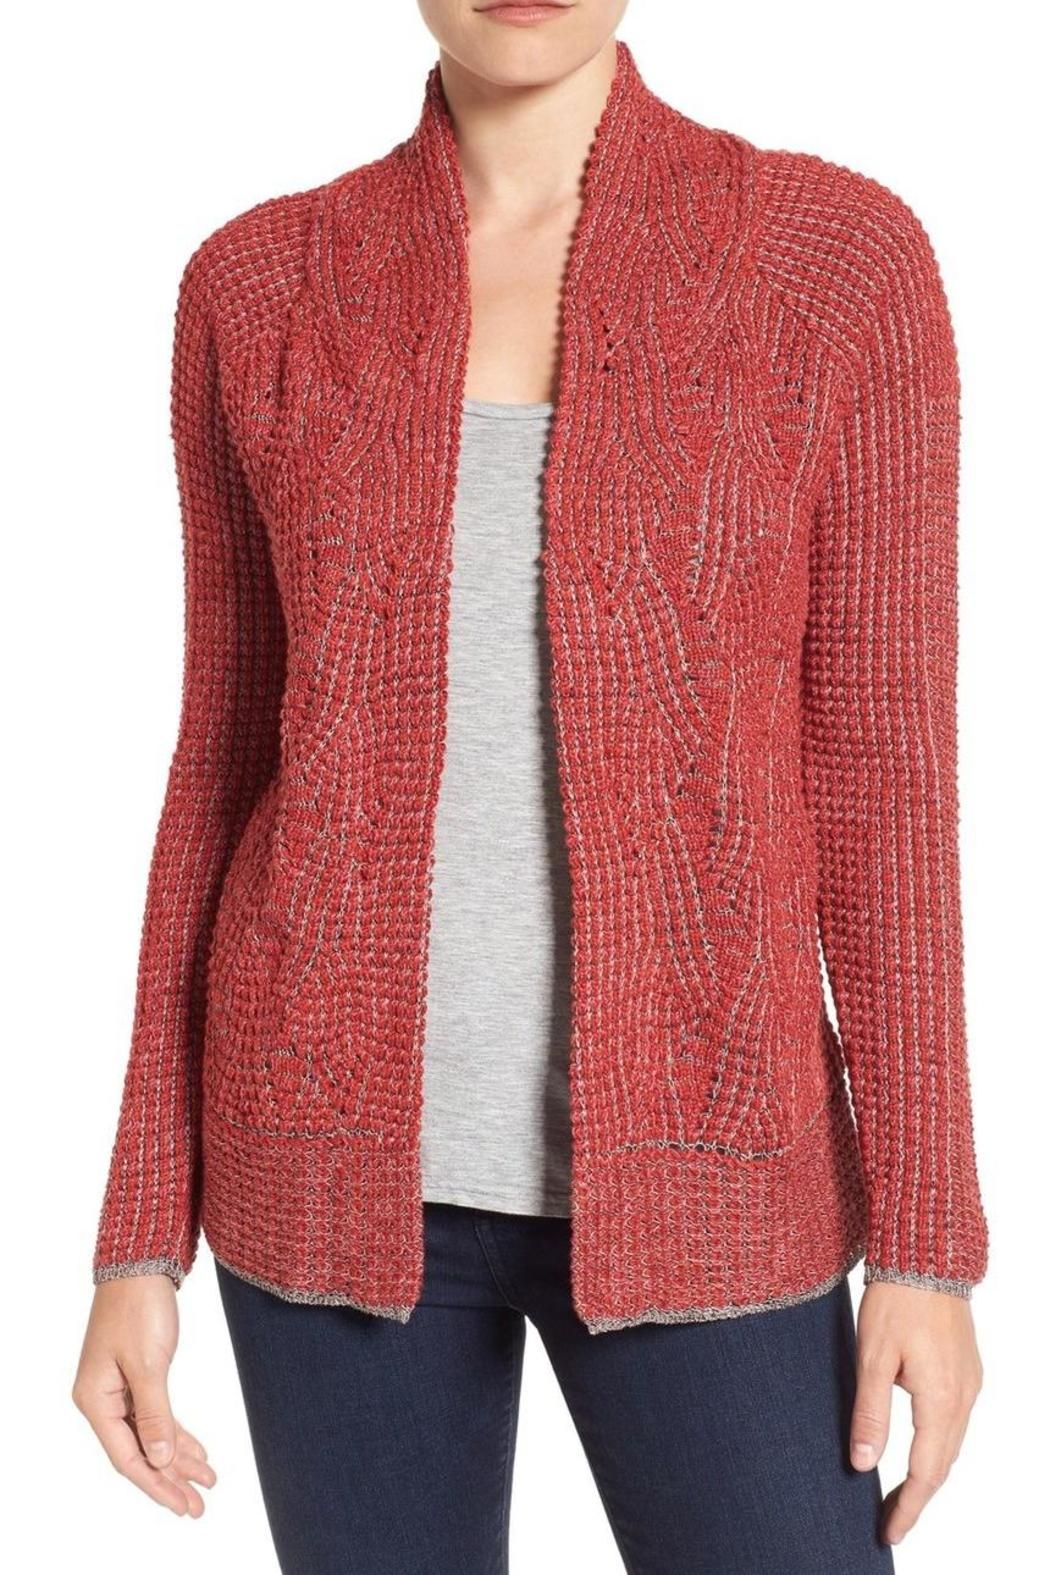 A swirling nubby knit outlined with contrast stitches brings a rich textural twist to an open-front cardigan styled with smooth-fitting raglan sleeves. Red with grey stitching. Pair with shell and slim pants.   Mixed Stitch Cardigan by Nic + Zoe. Clothing - Sweaters - Cardigans Canada